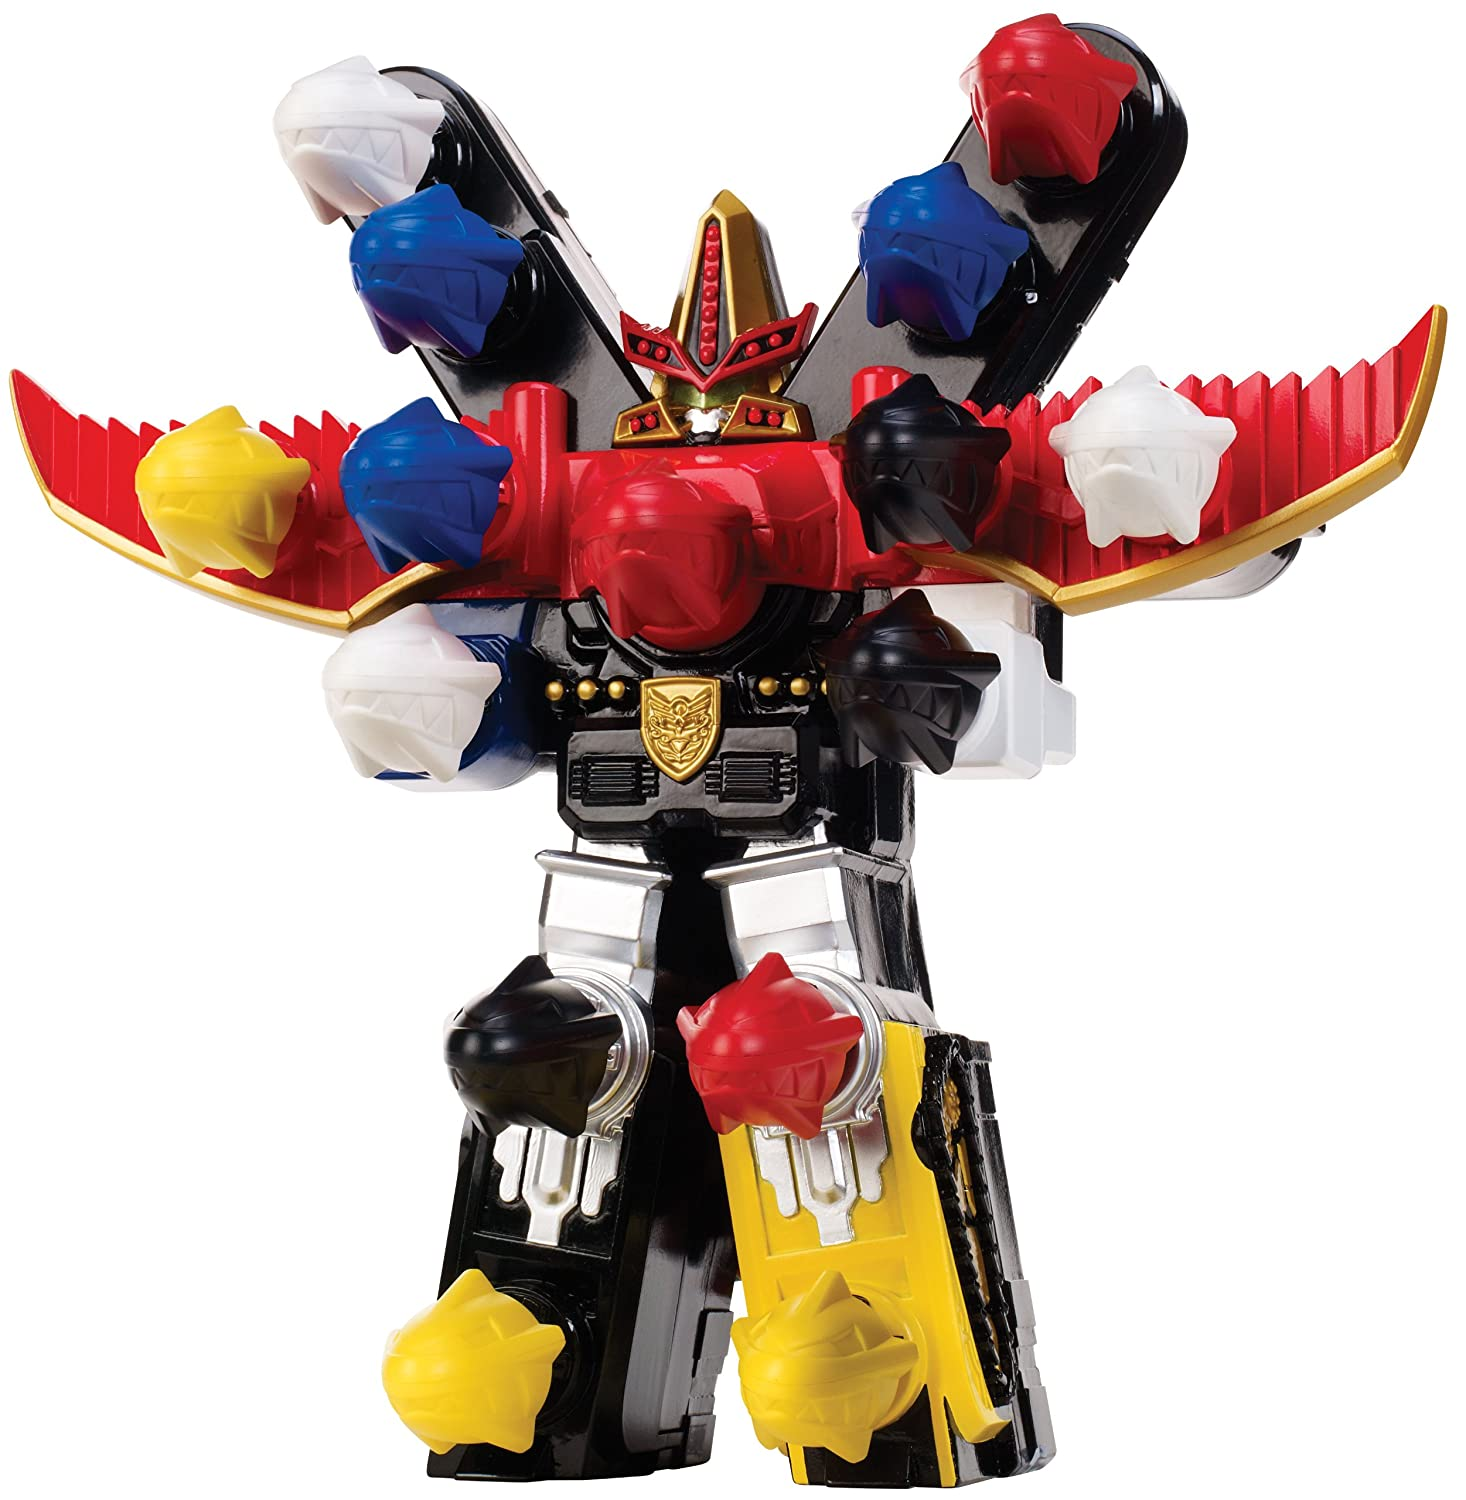 Uncategorized Robot From Power Rangers amazon com power rangers megaforce battlefire ultra gosei great megazord toys games